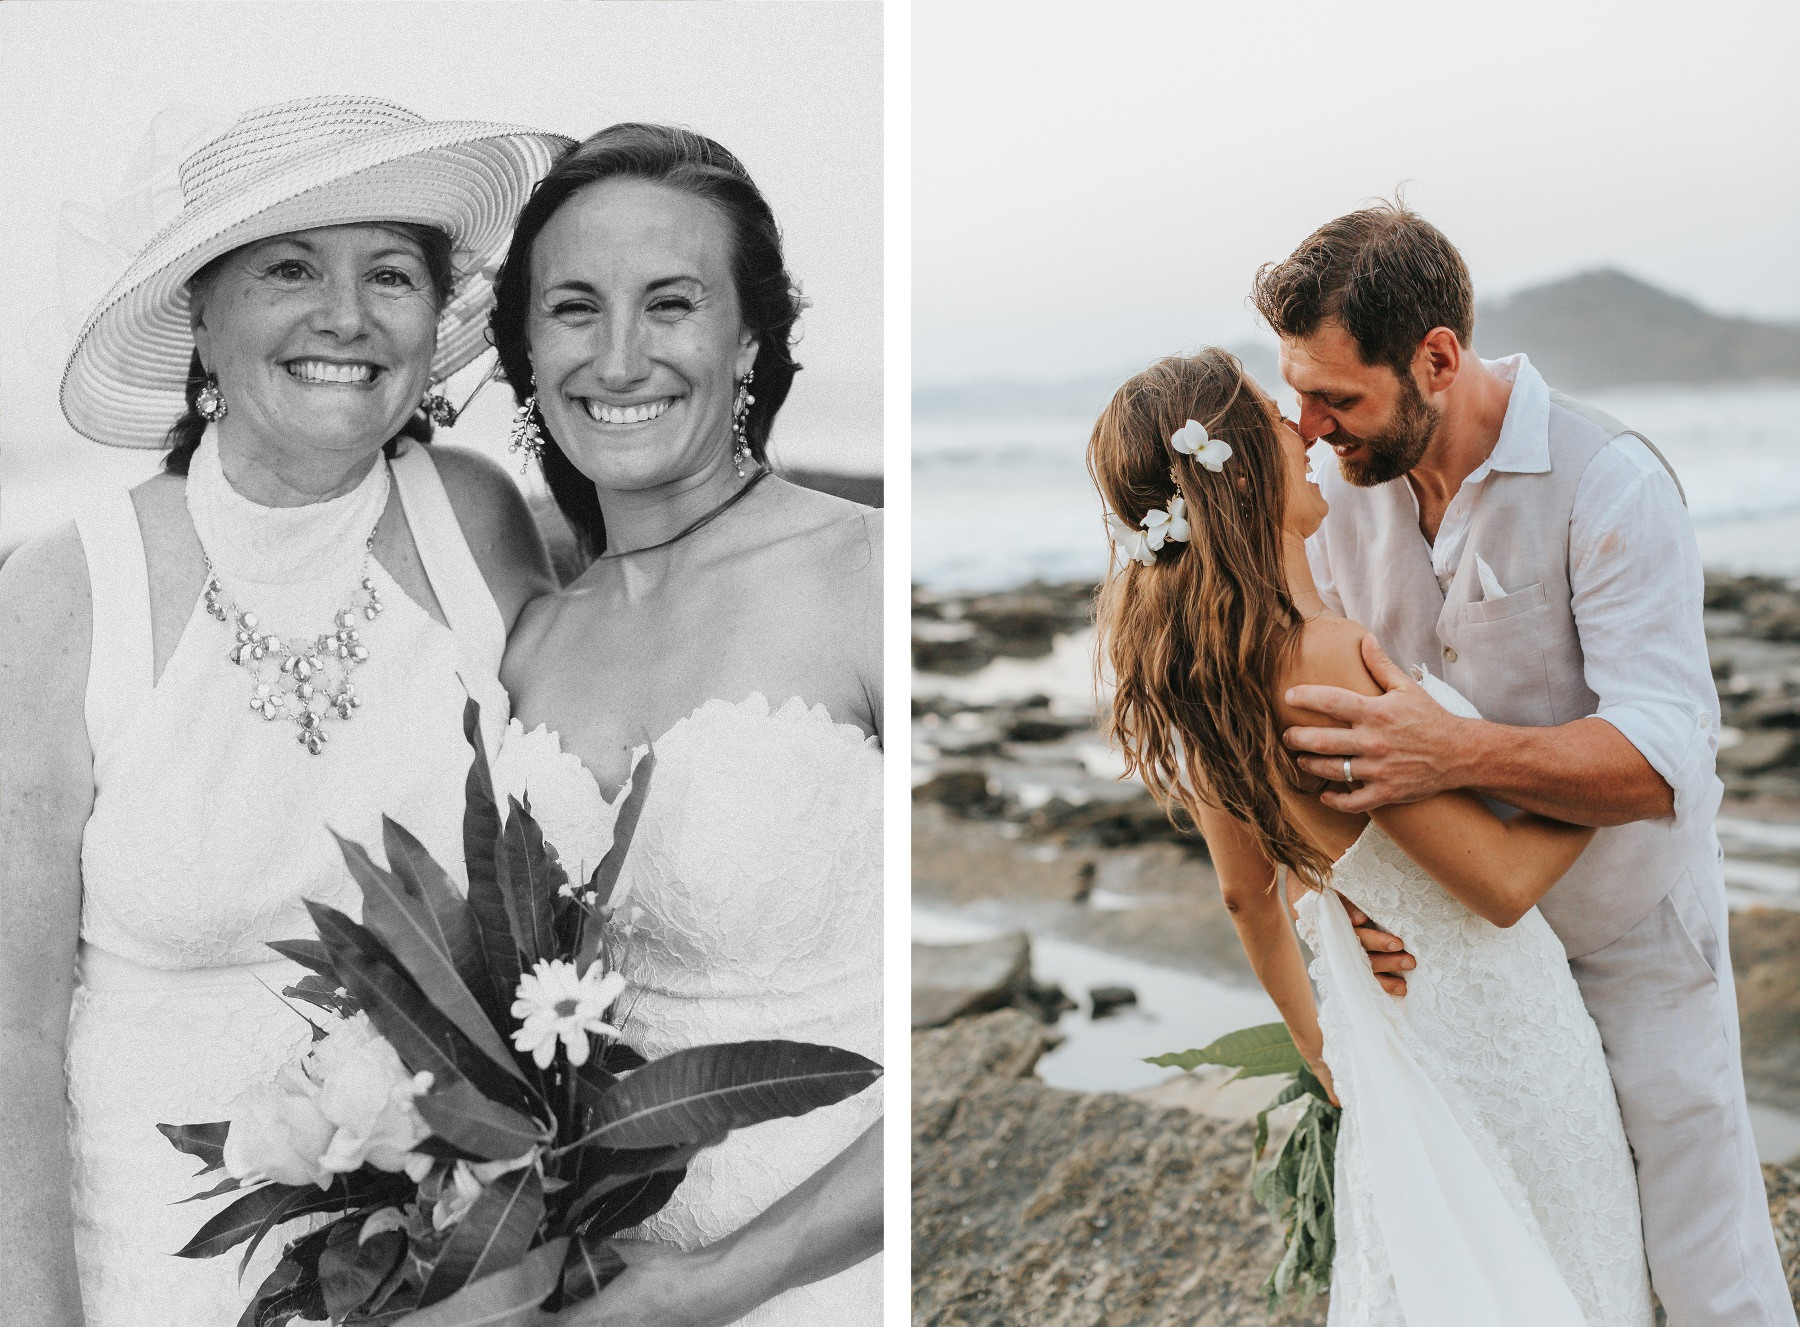 Destination wedding photographer Costa Rica